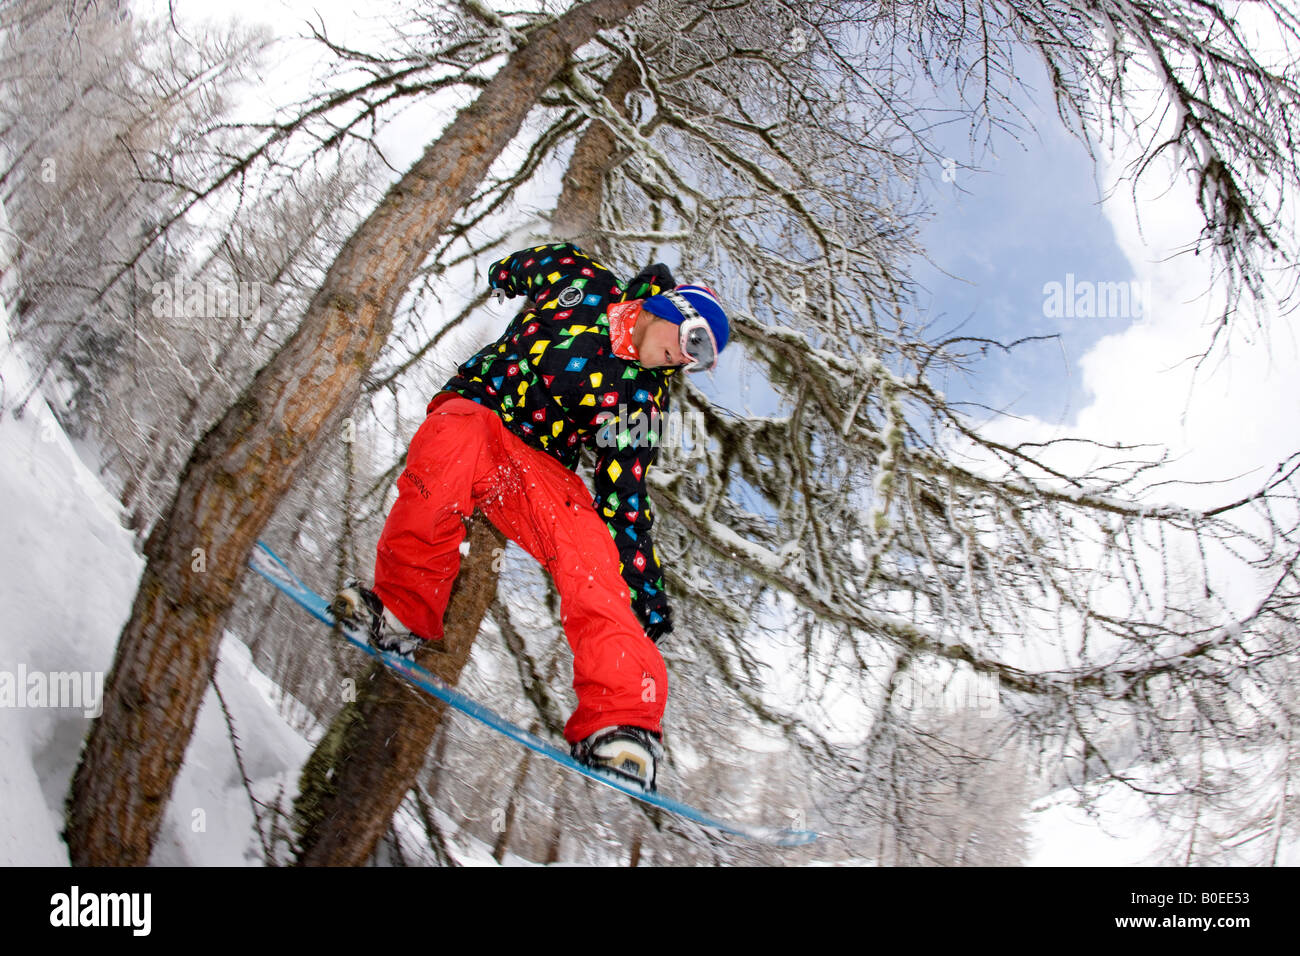 Snowboarder jumps through two trees off piste. - Stock Image